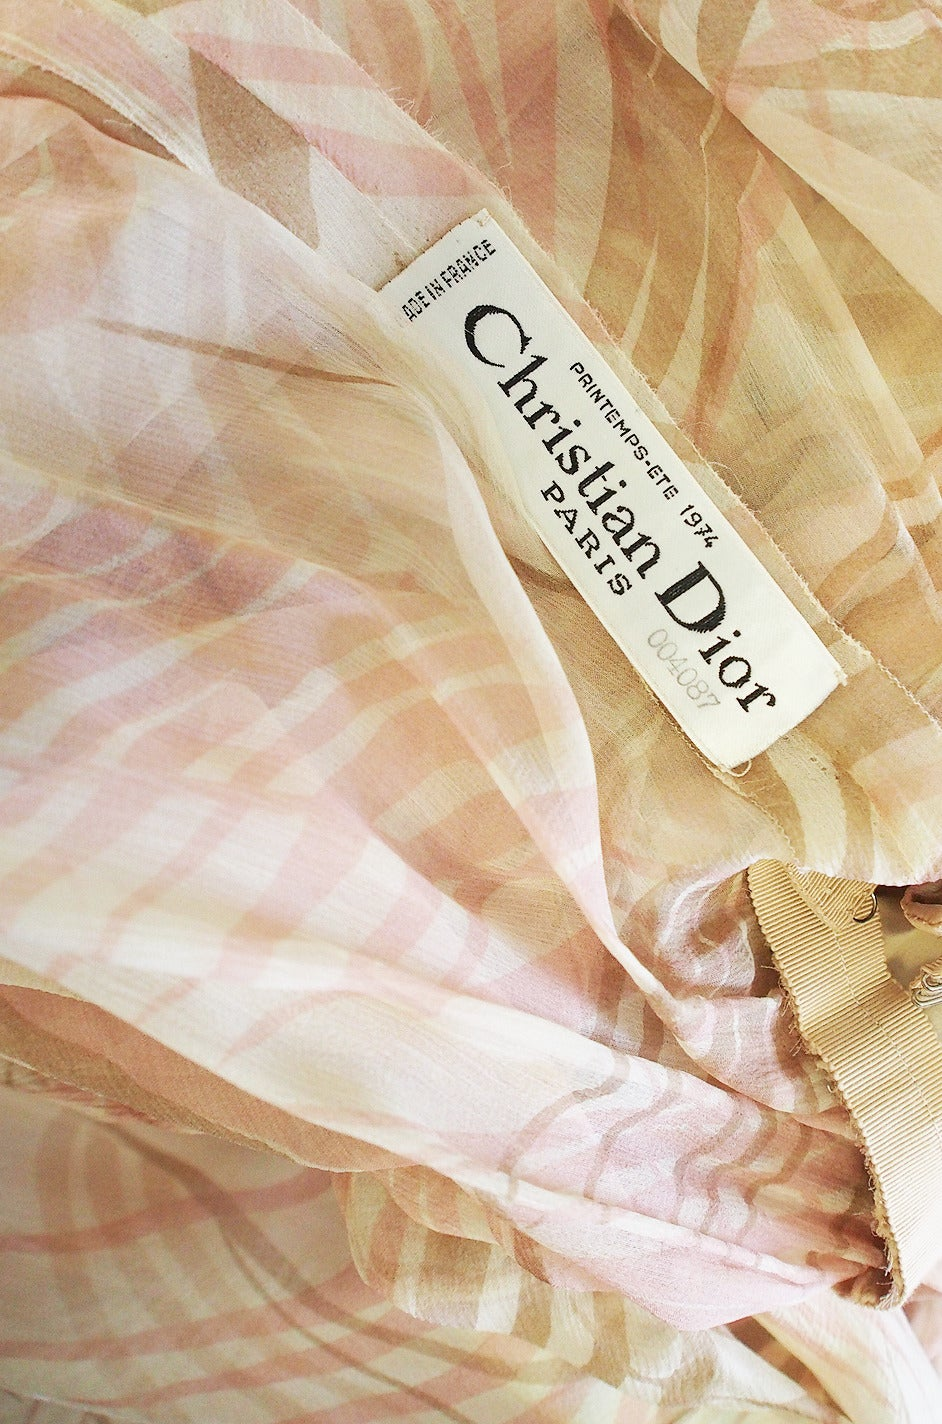 S/S 1974 Christian Dior Haute Couture Silk Gown For Sale 5